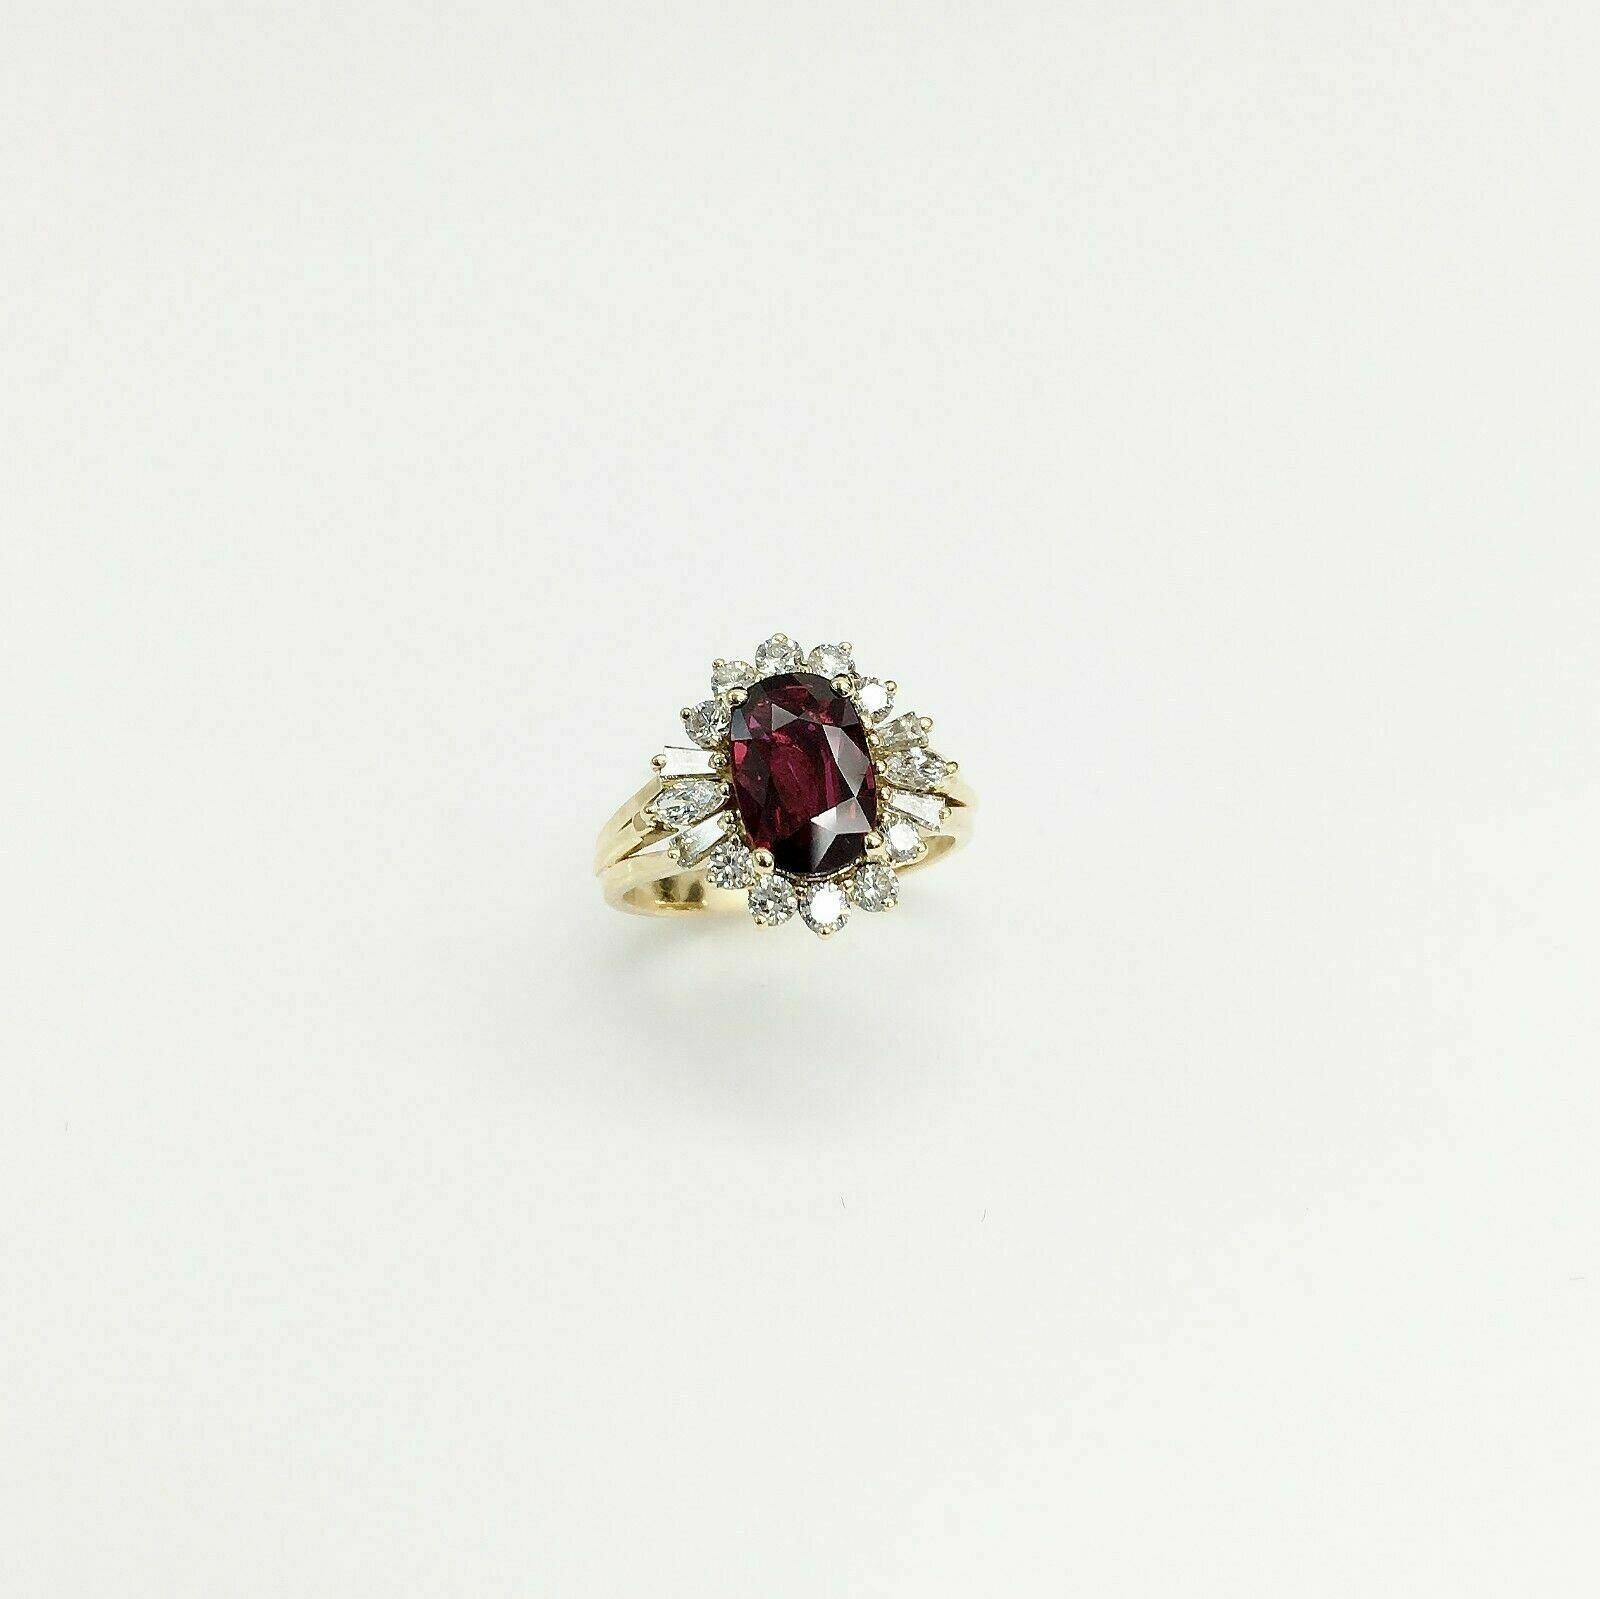 2.09 Carats t.w. Diamond and Ruby Ring Ruby is 1.59 Carats AGL Lab Report